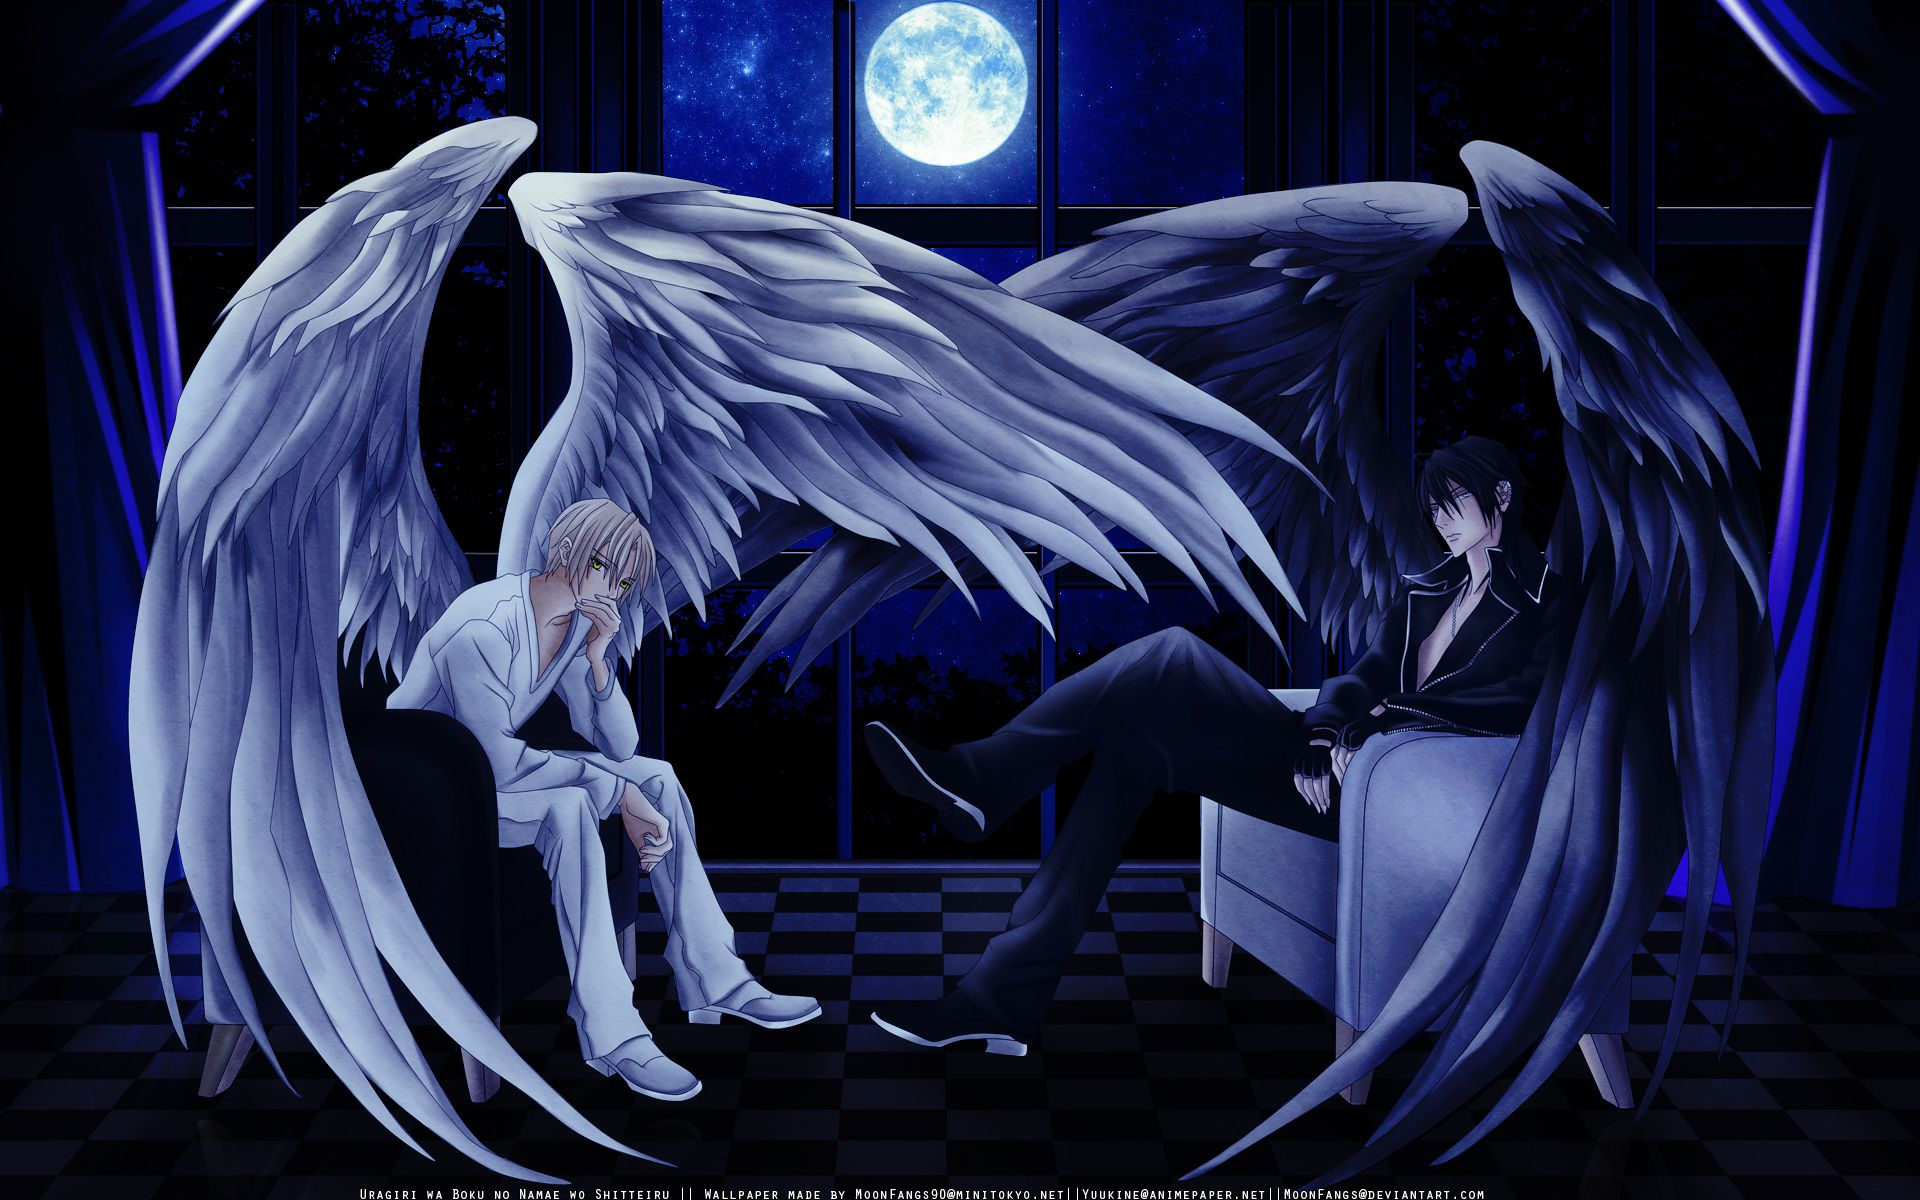 Http Hdw Datawallpaper Com Anime All Of My Angels Wide Wallpaper